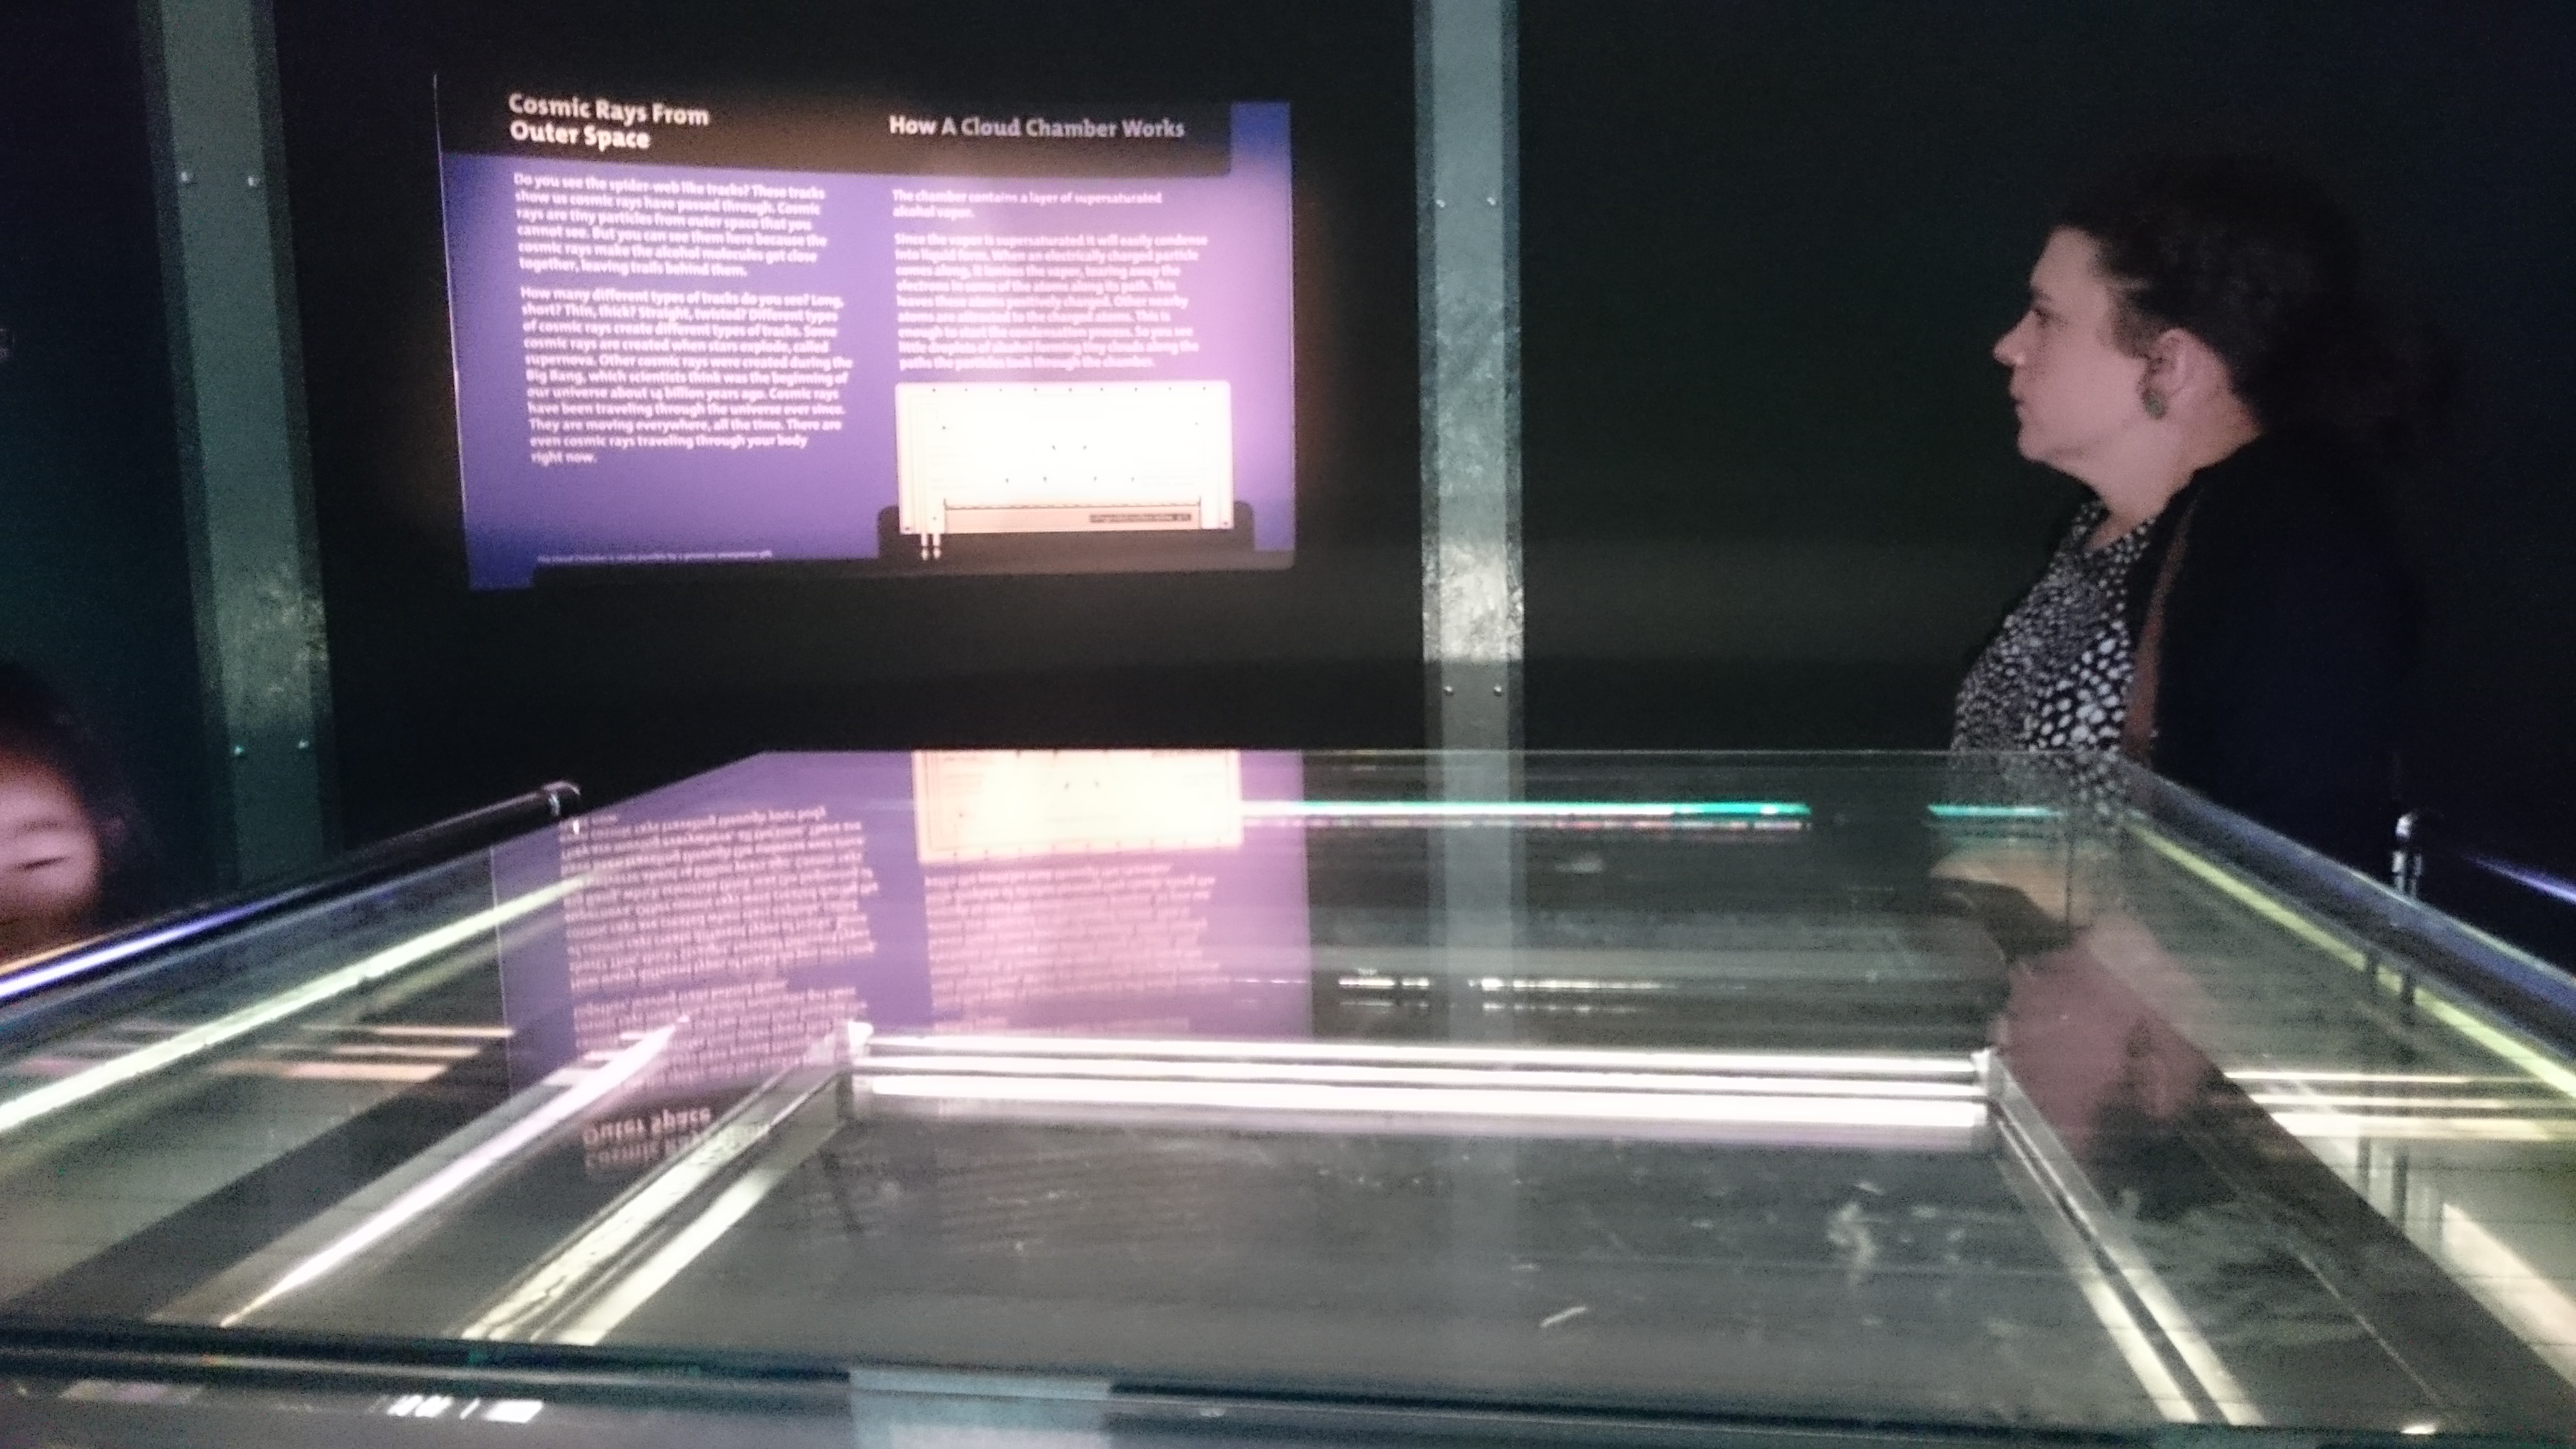 Learning about Cosmic Rays